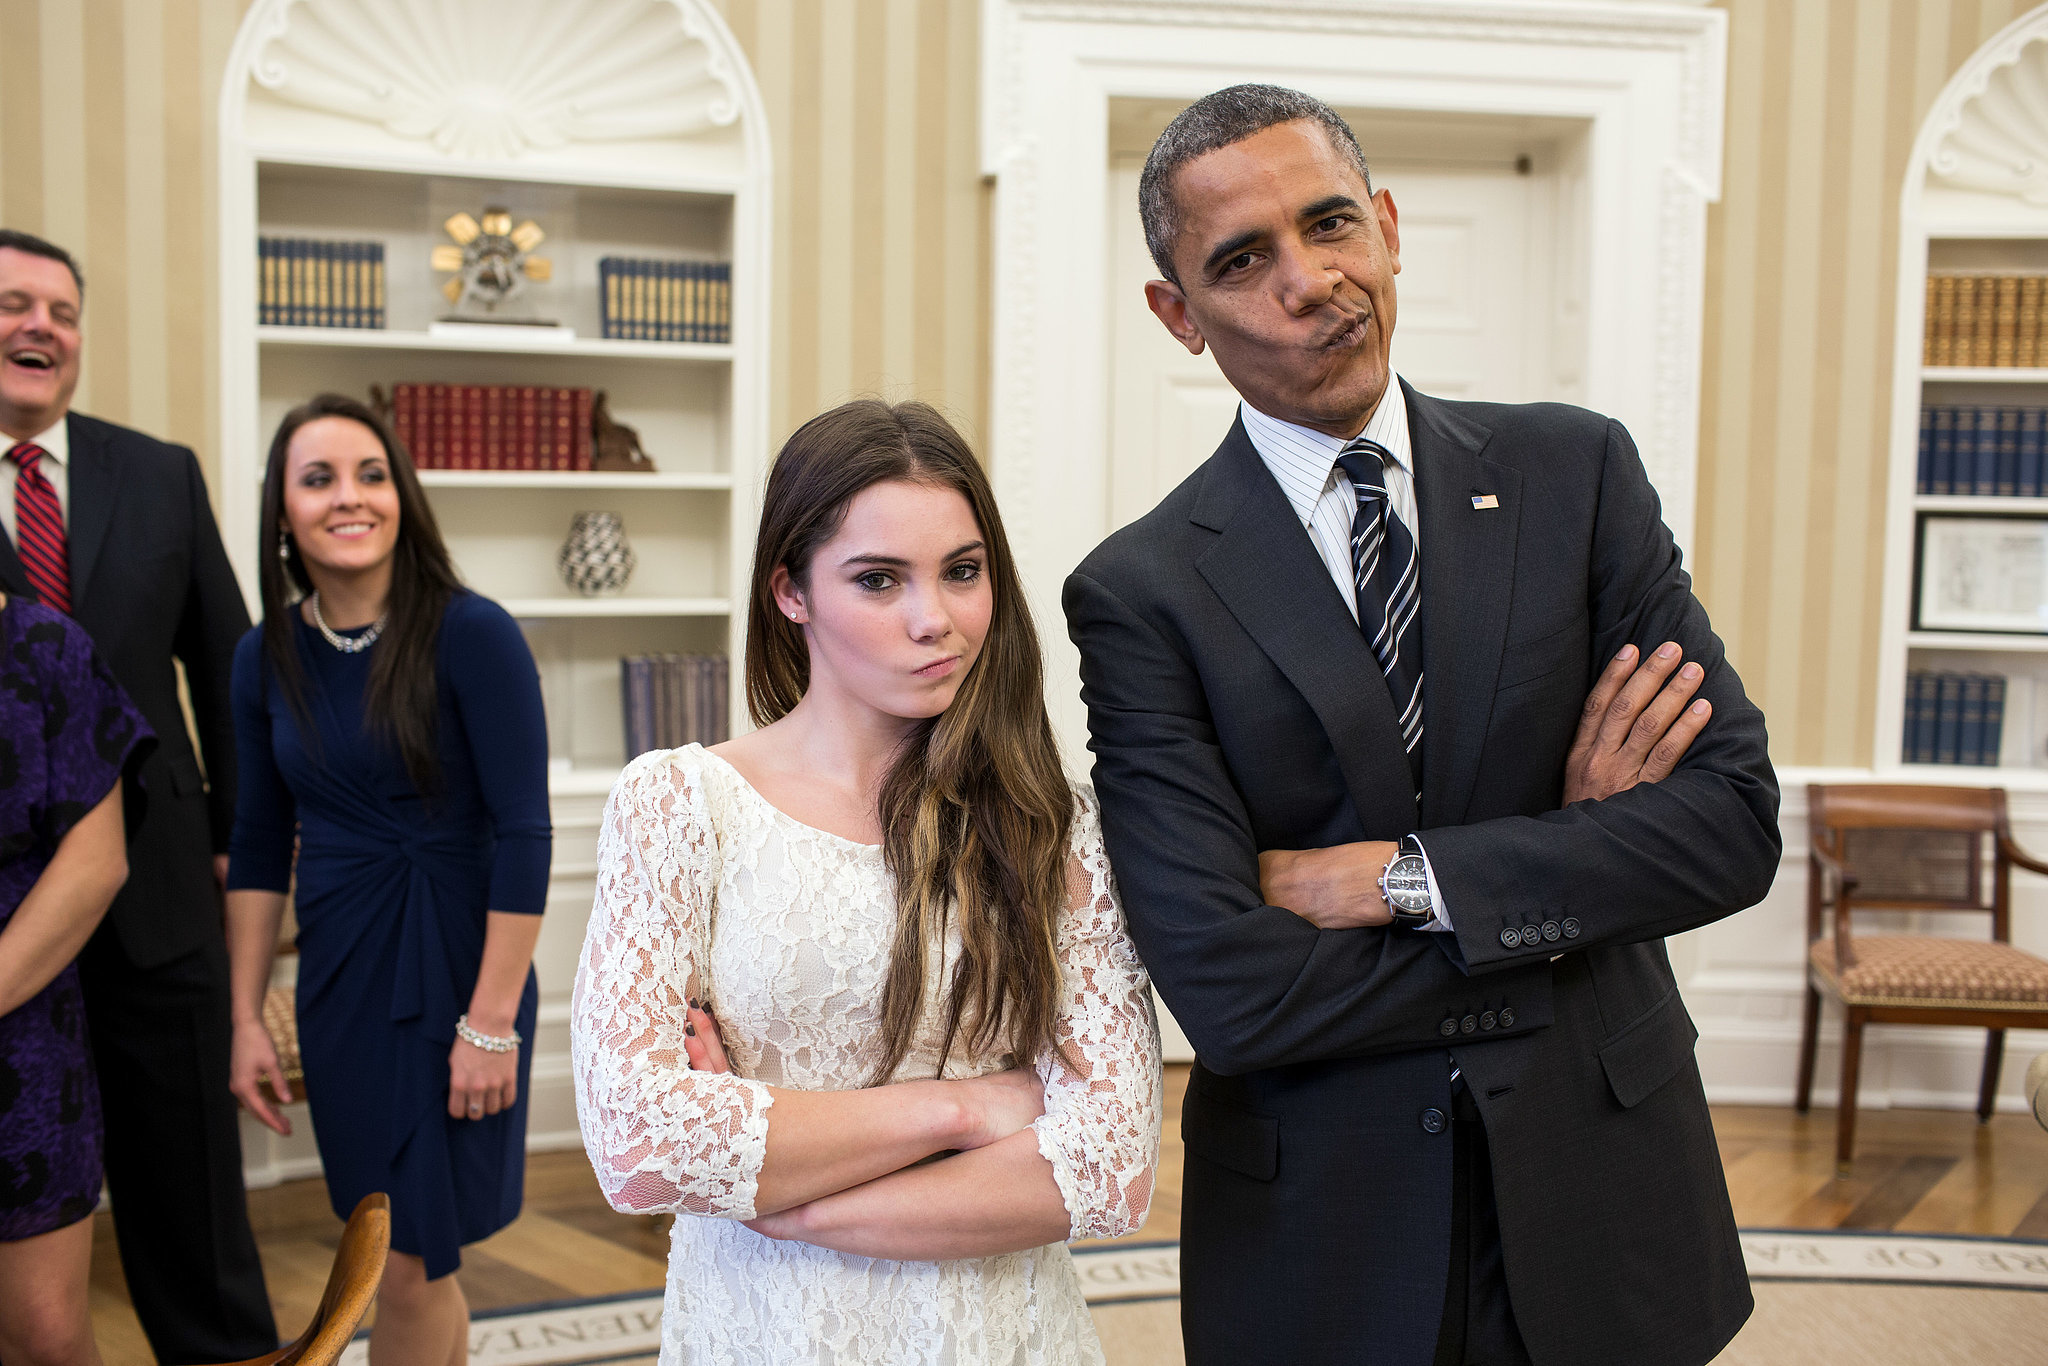 McKayla Maroney and President Barack Obama